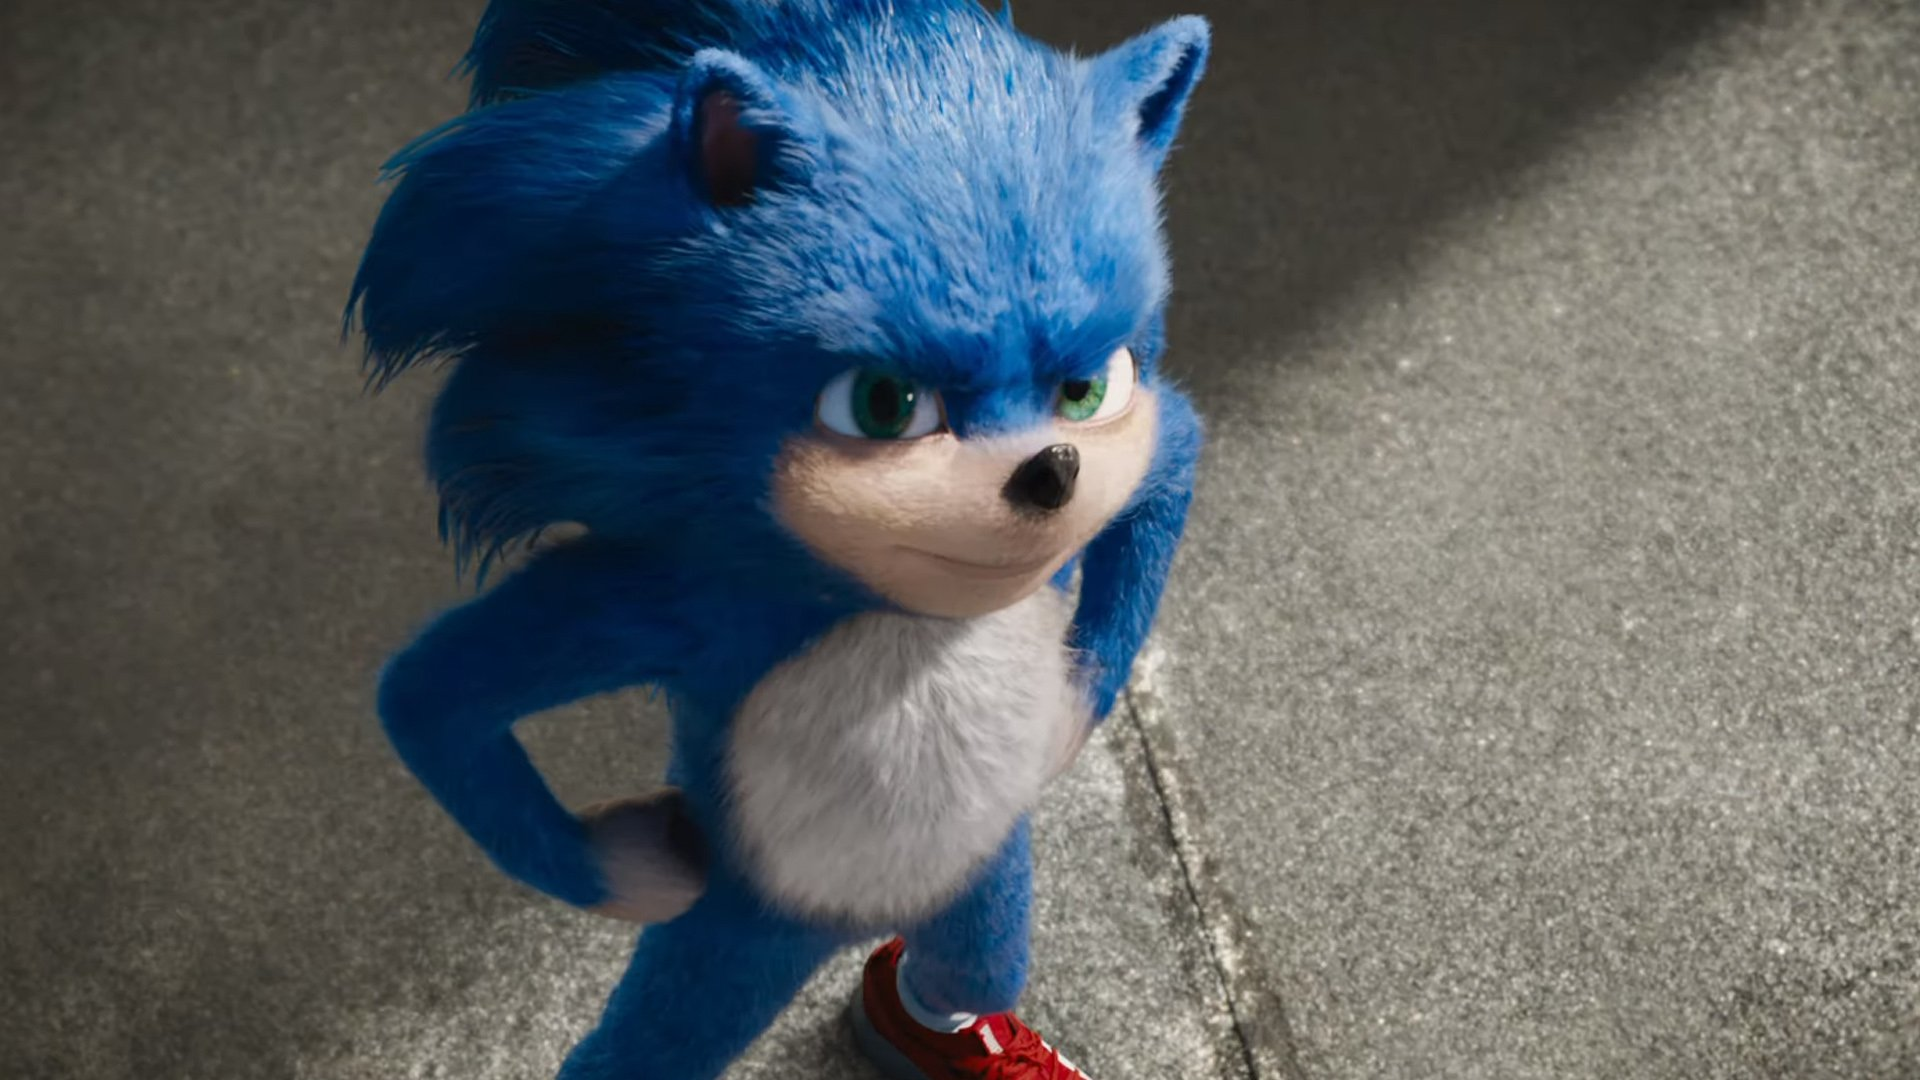 sonic the hedgehog movie 2019 wallpaper